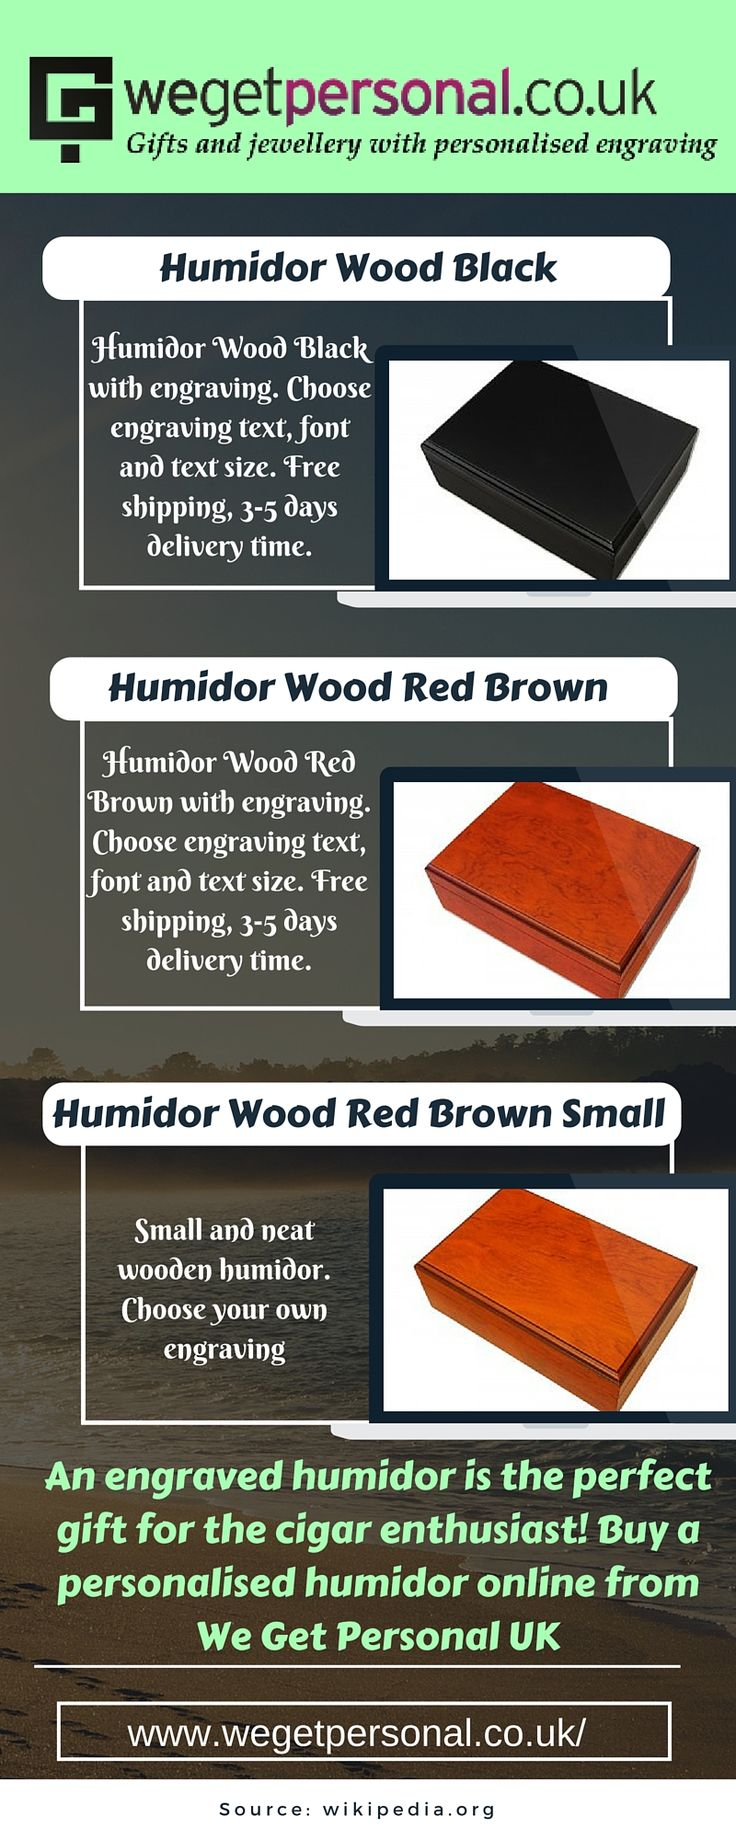 Are you searching a place for buy a different gift to your dear ones? Purchase Engraved Humidor from We Get Personal UK. It is an Ideal Gift for the Cigar Enthusiast. You can choose engrave option for Humidor and engrave with your choice. Free shipping, 3-5 days delivery time. #engravedhumidor #personalisedhumidor #wegetpersonalUK